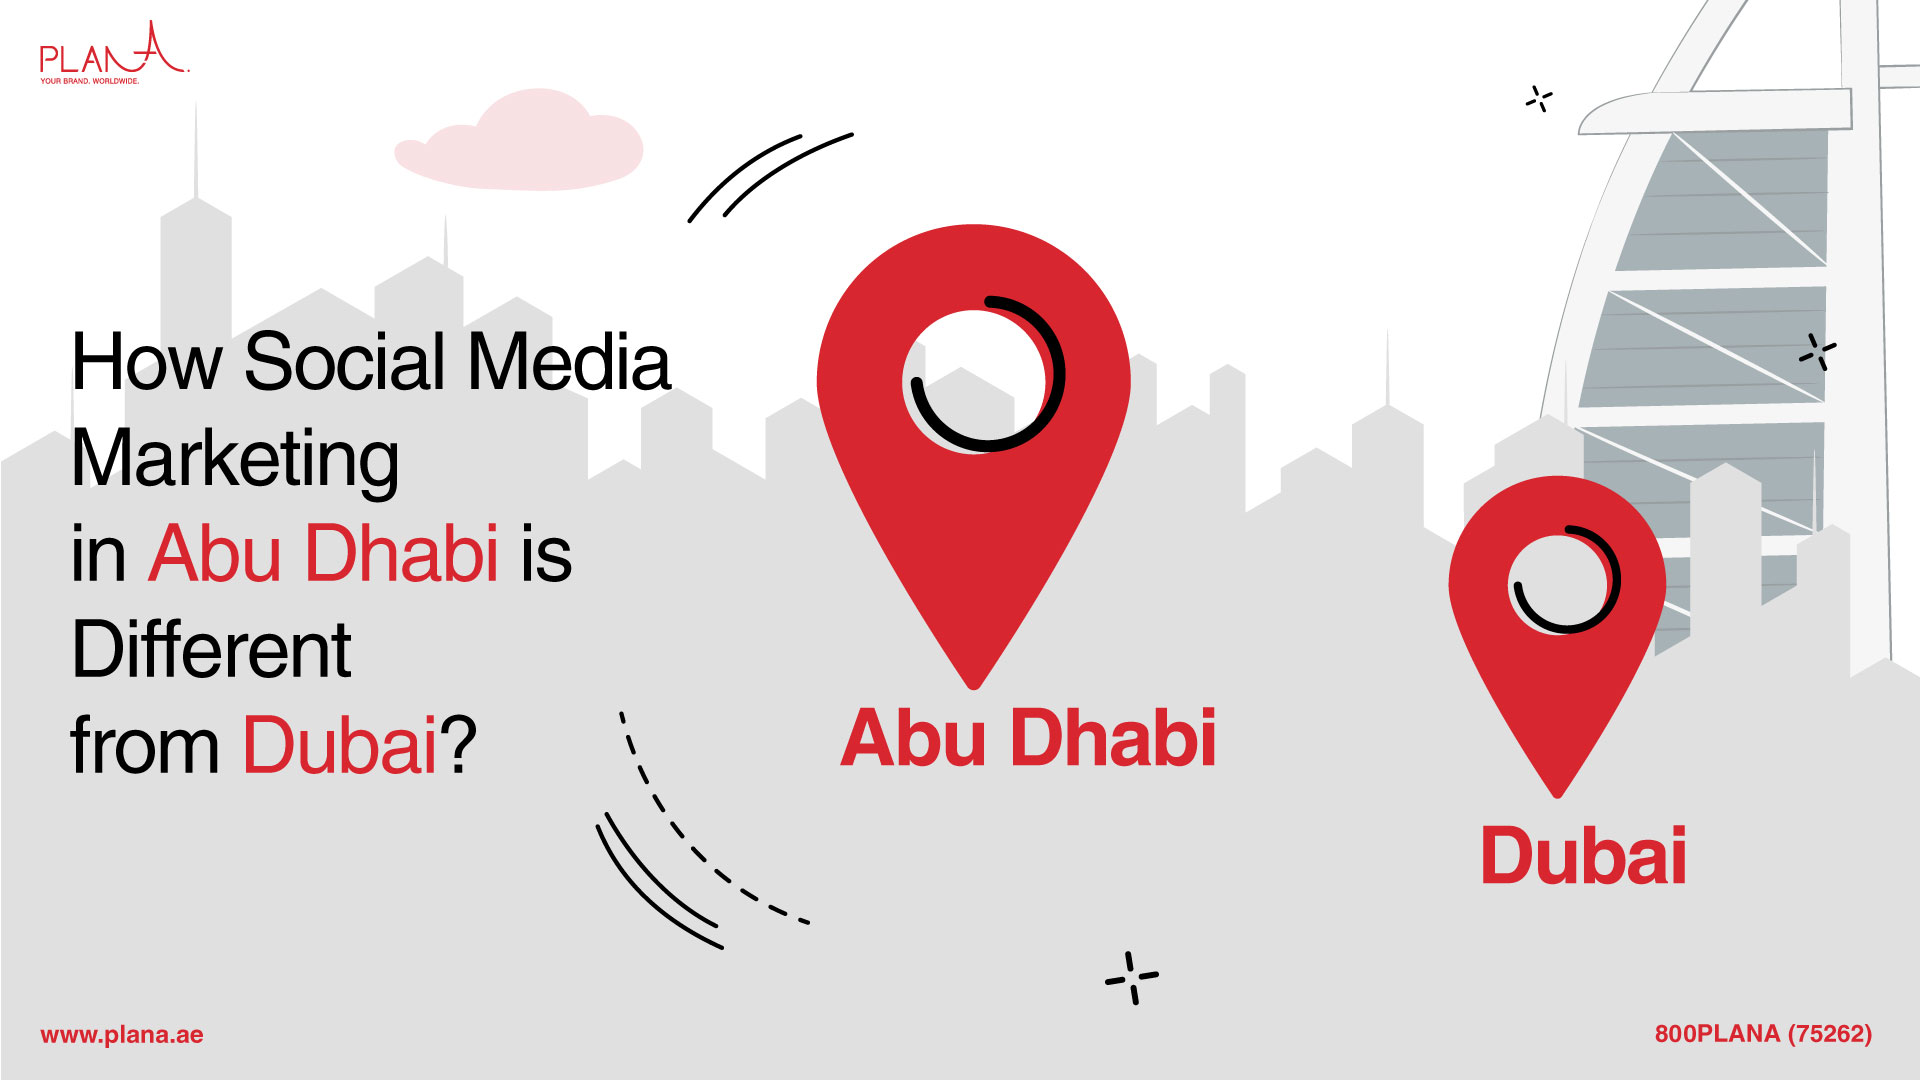 How Social Media Marketing in Abu Dhabi Is Different from Dubai?